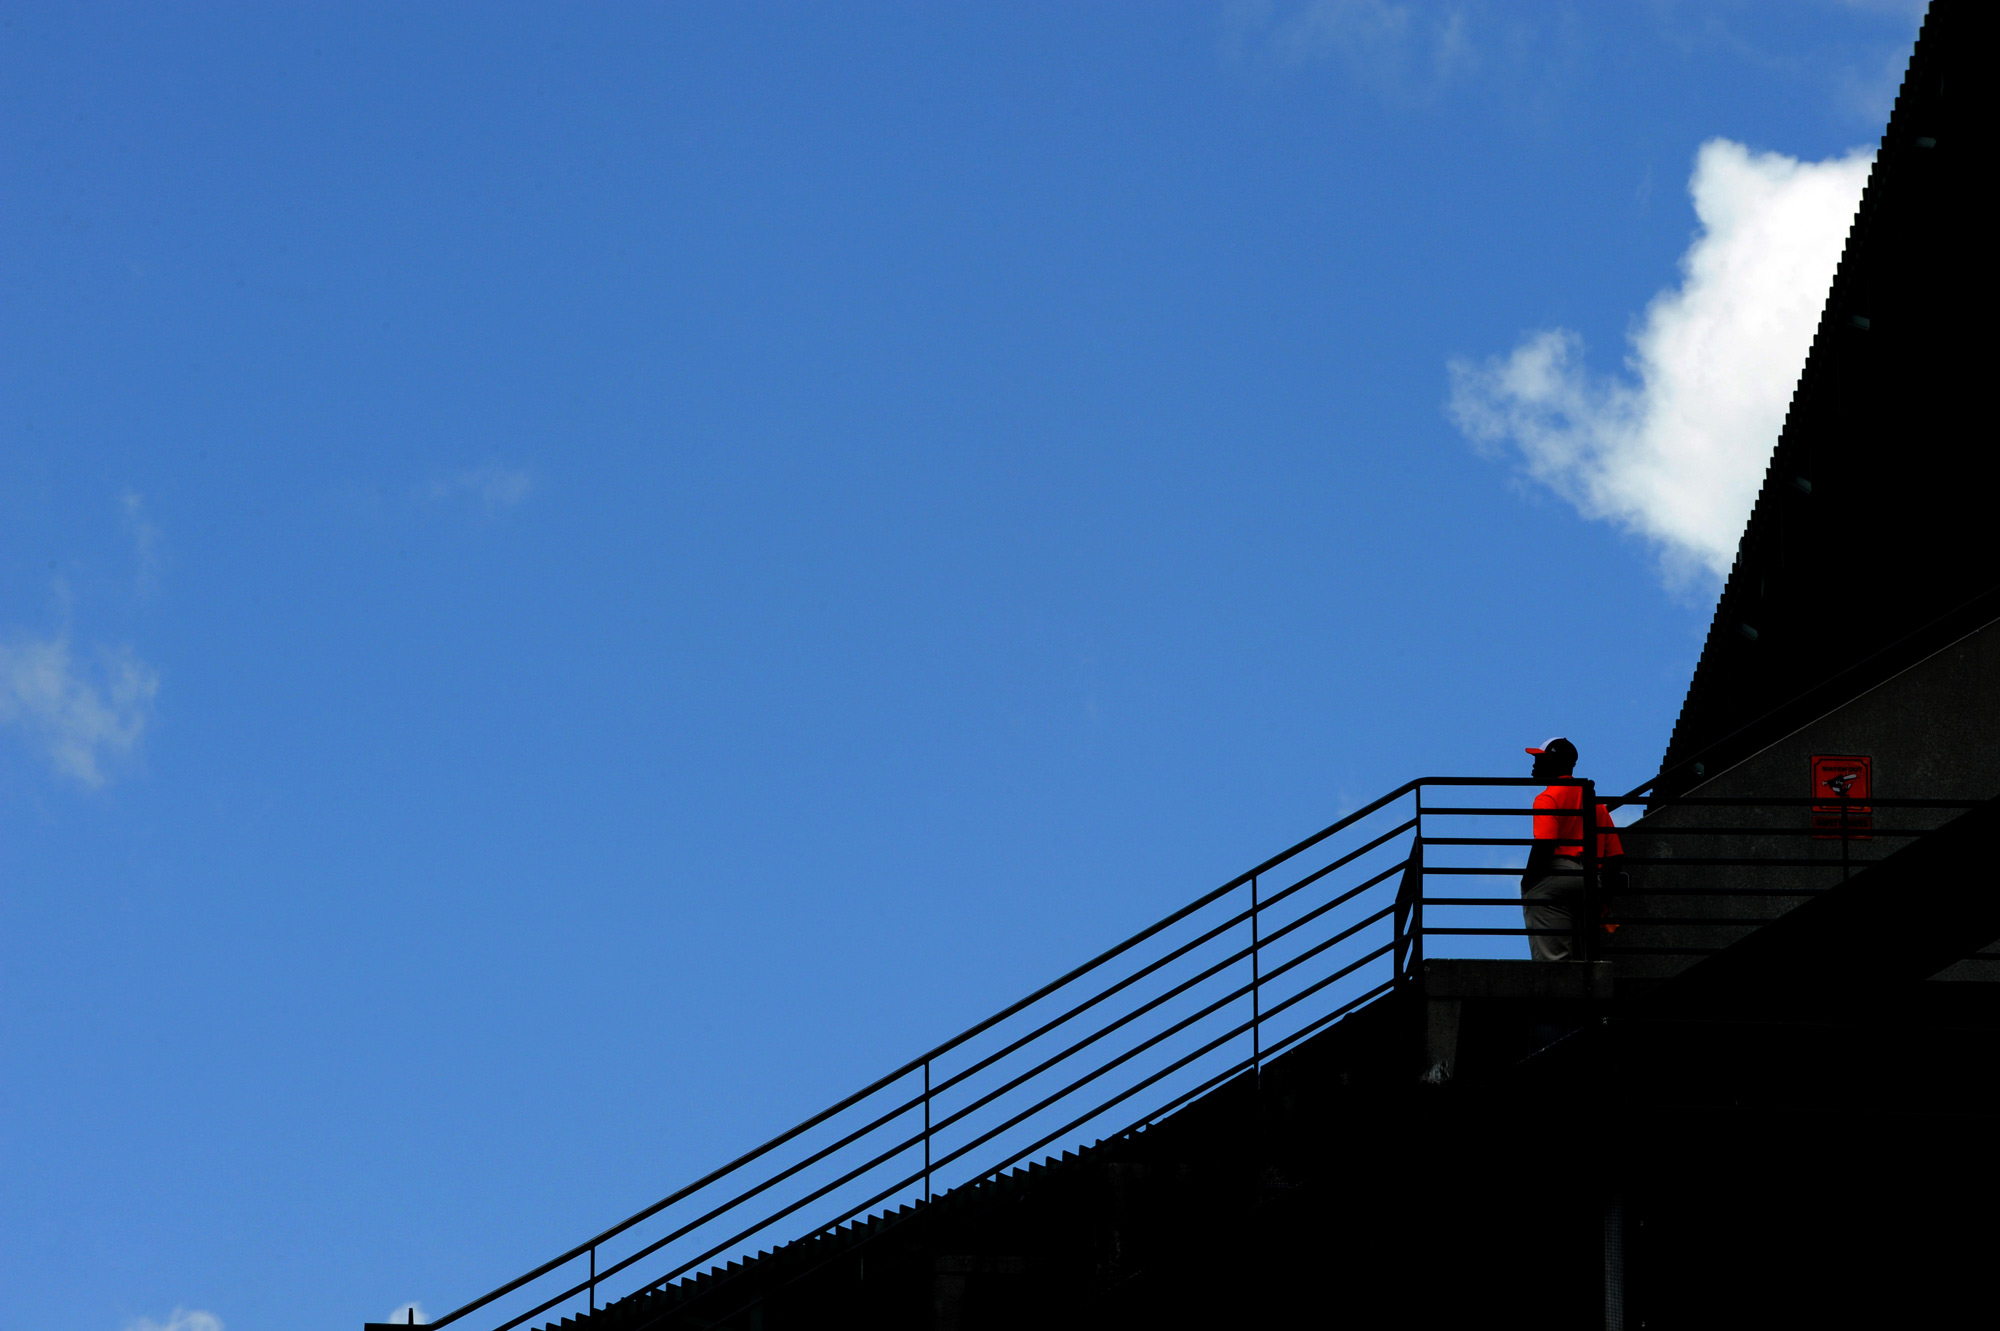 An Oriole Park employee looks out at the field before a home game starts on Aug. 4, 2013 at Oriole Park at Camden Yards in Baltimore, Md.